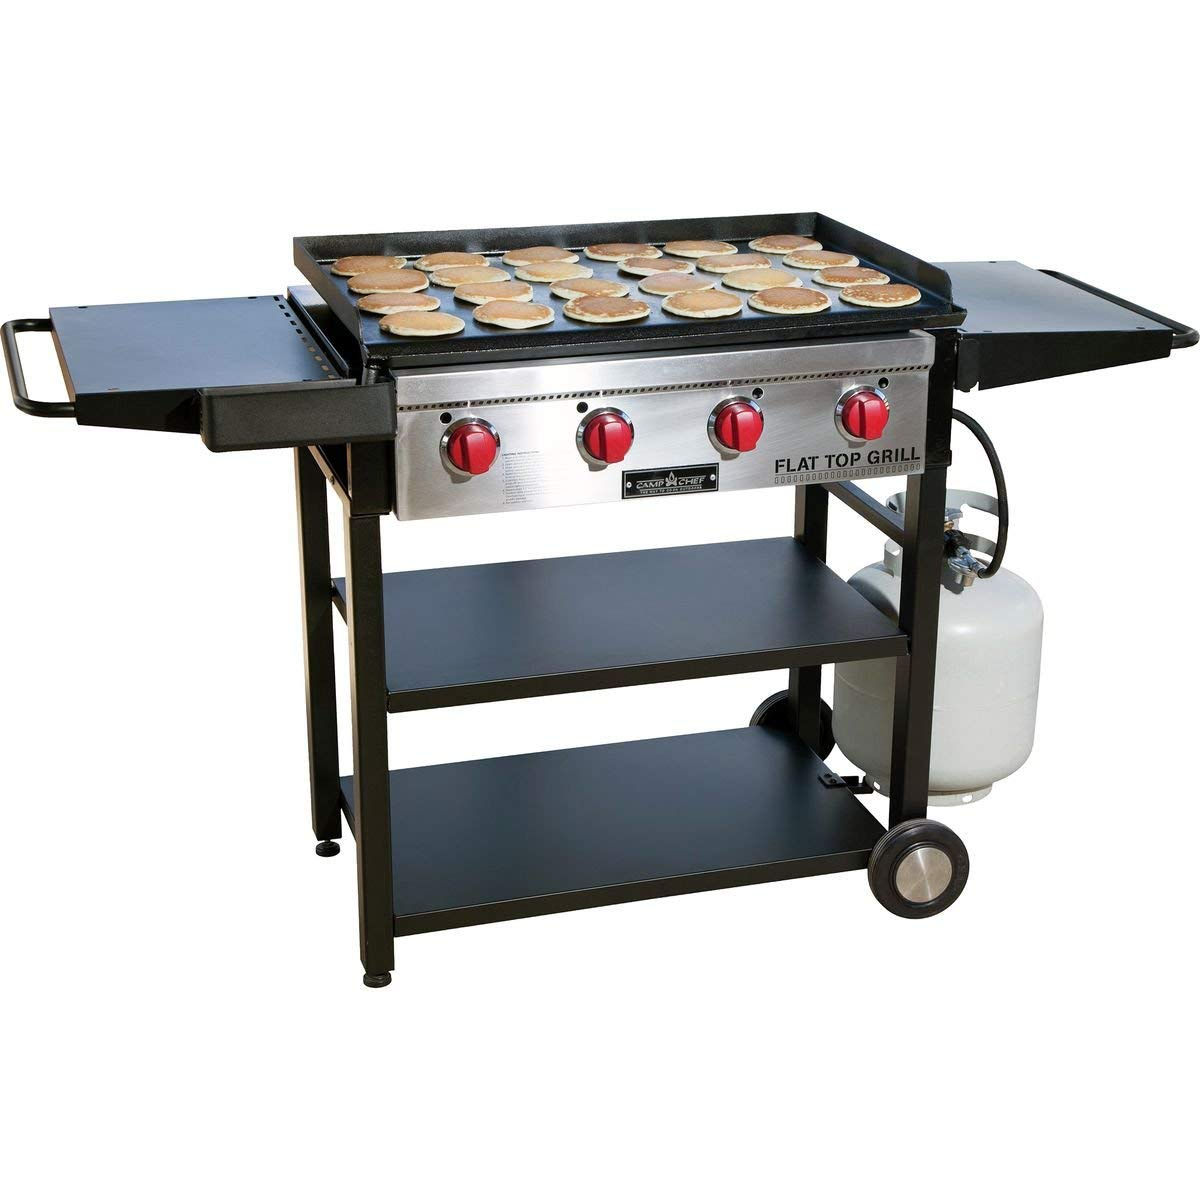 Camp Chef FTG600 Flat Top Professional Griddle Grill Review